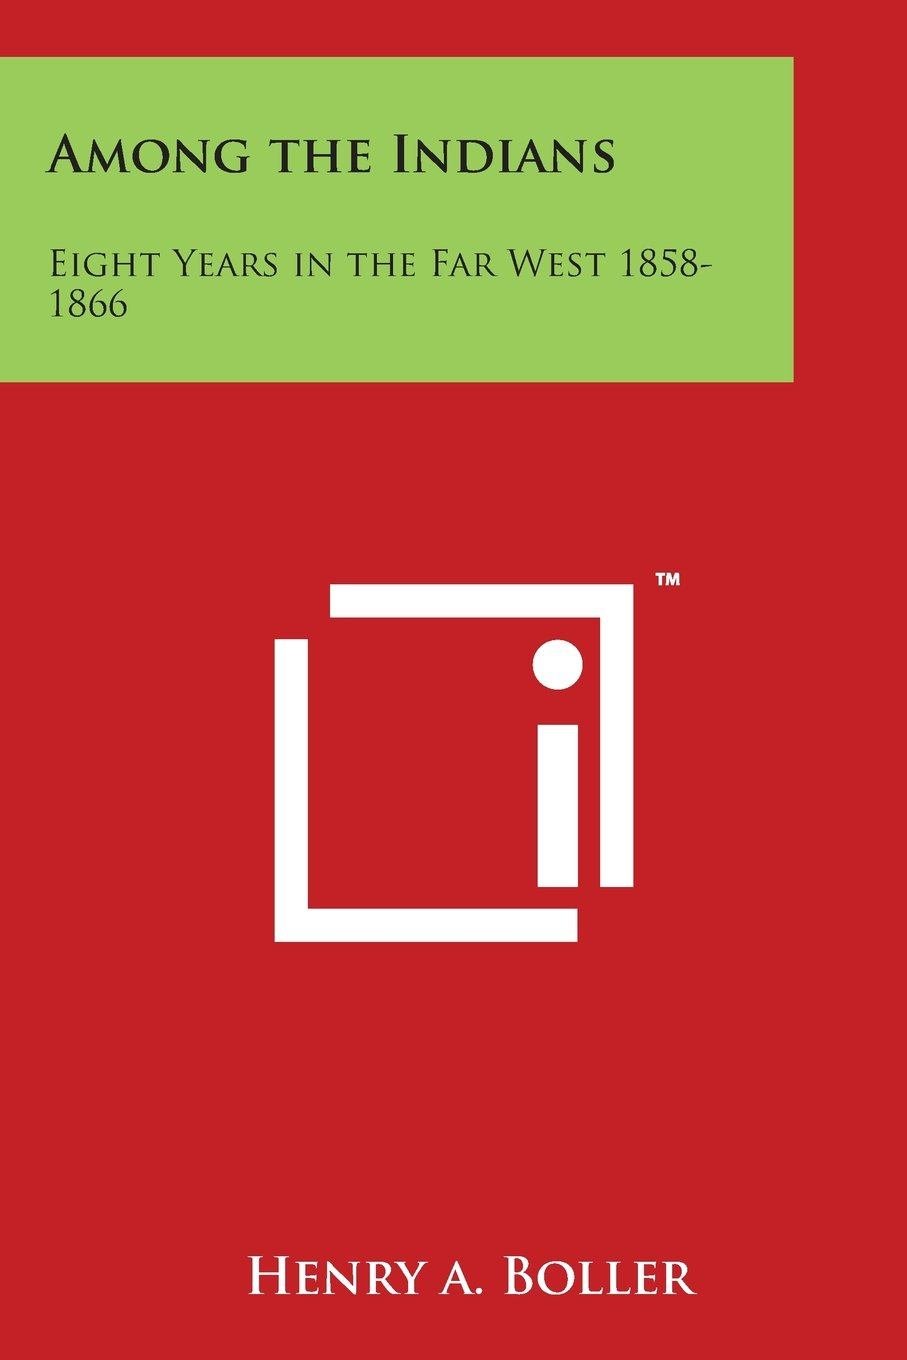 Download Among the Indians: Eight Years in the Far West 1858-1866 pdf